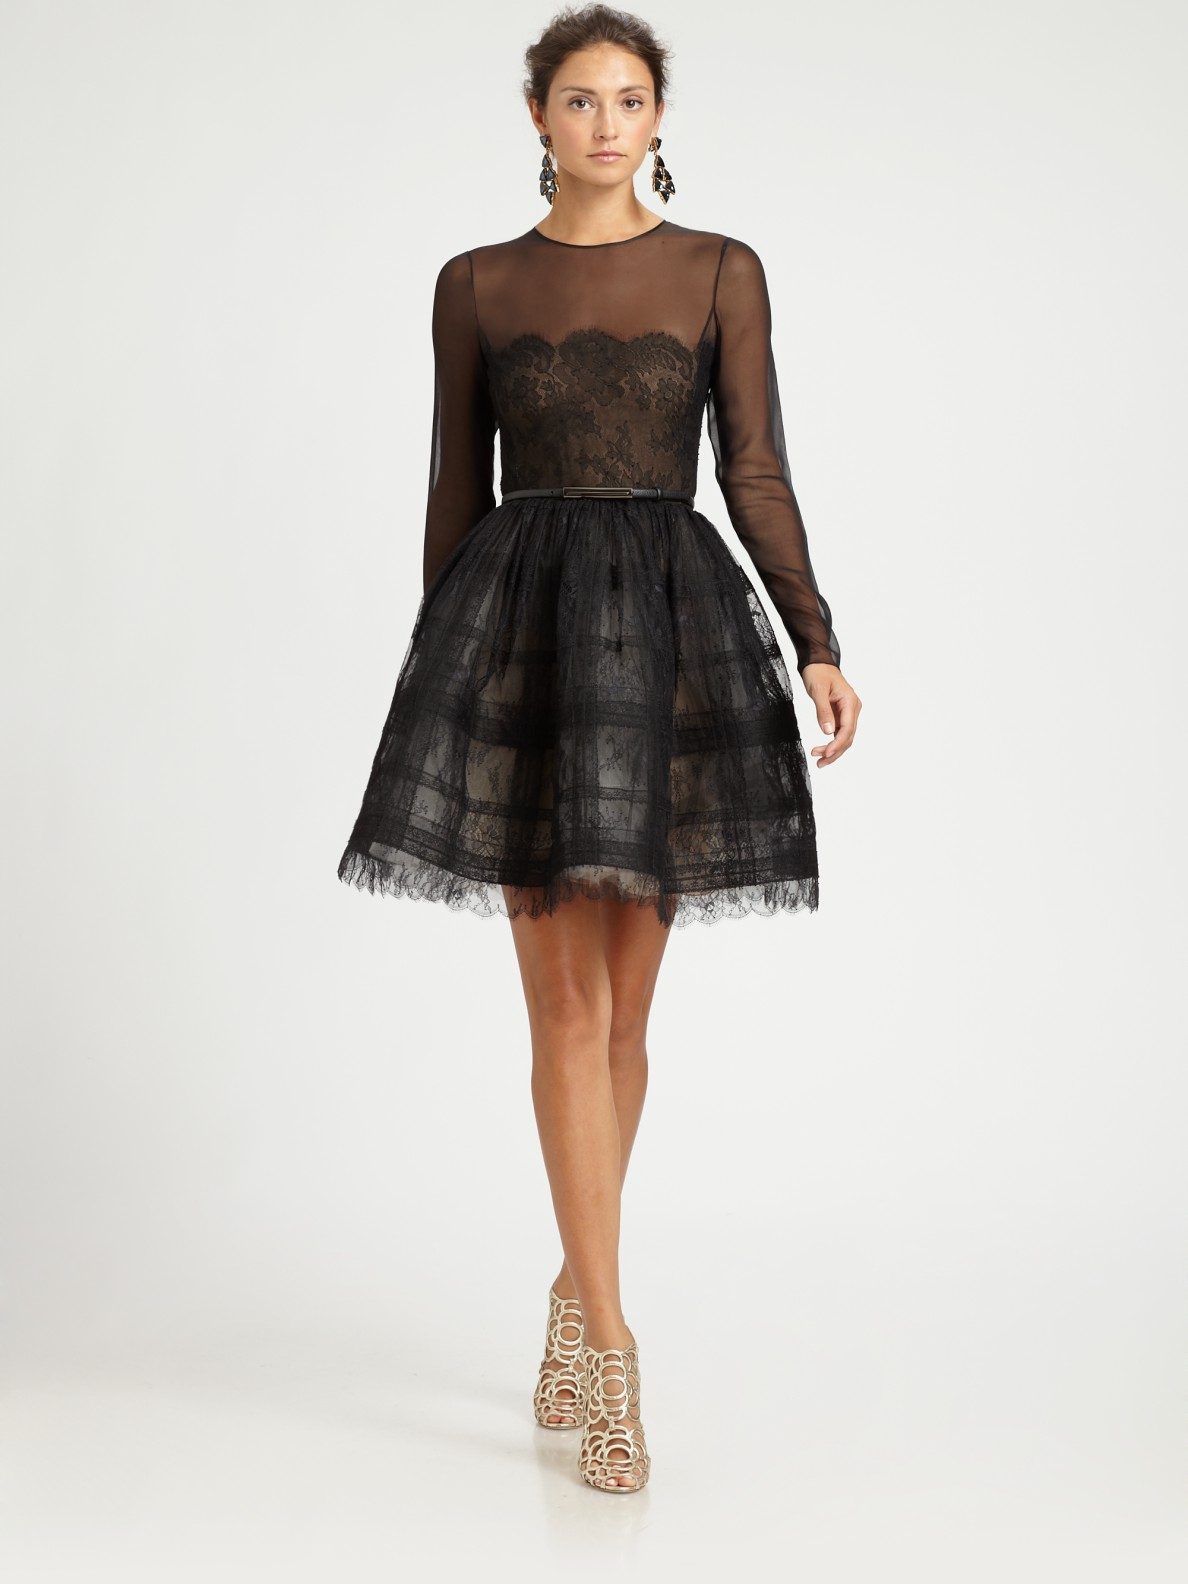 Lace Cocktail Dresses